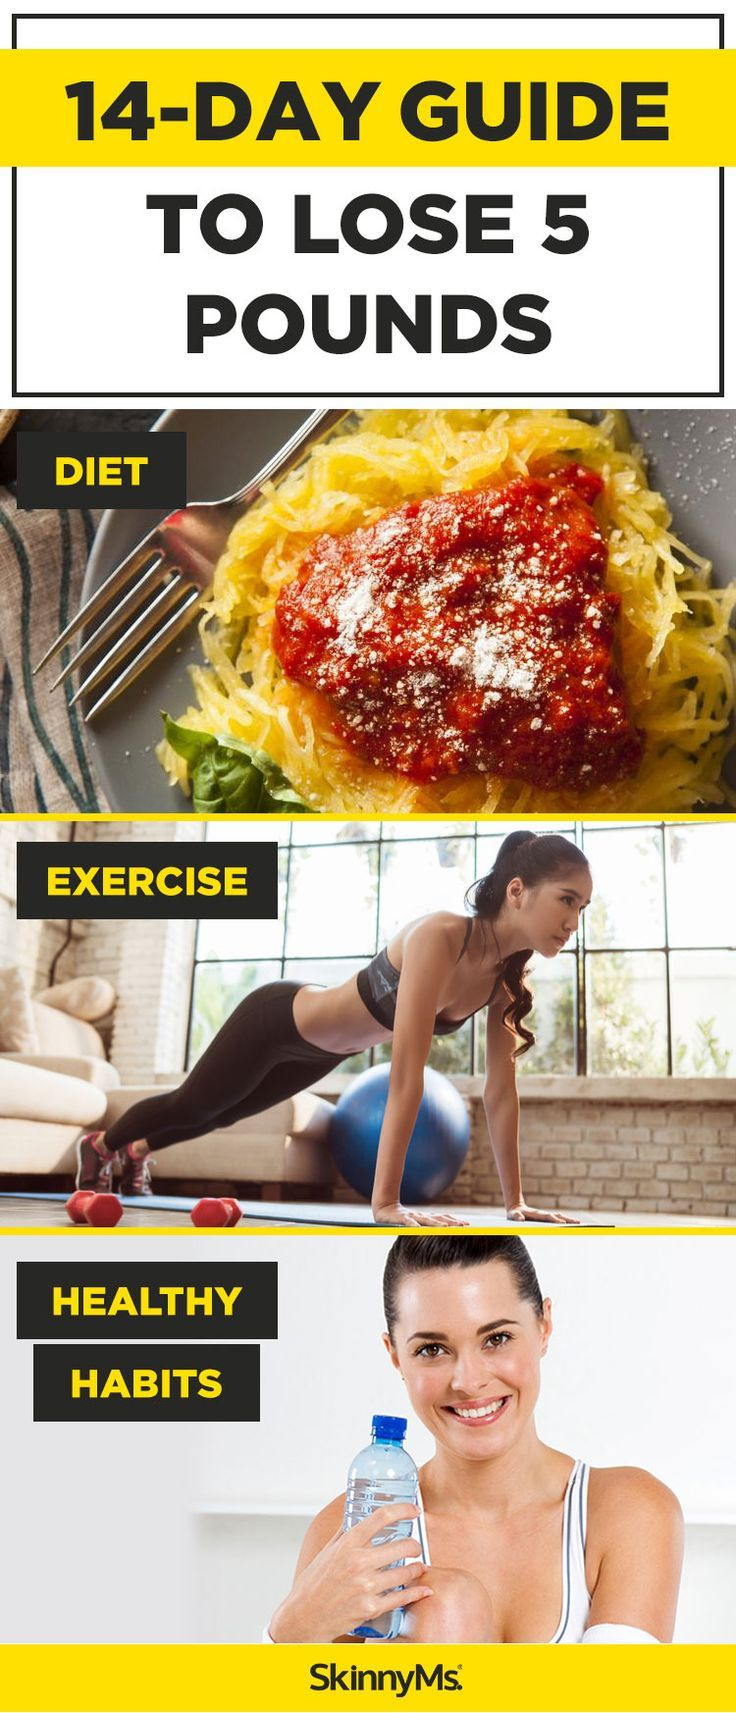 14-Day Guide to Lose 5 Pounds